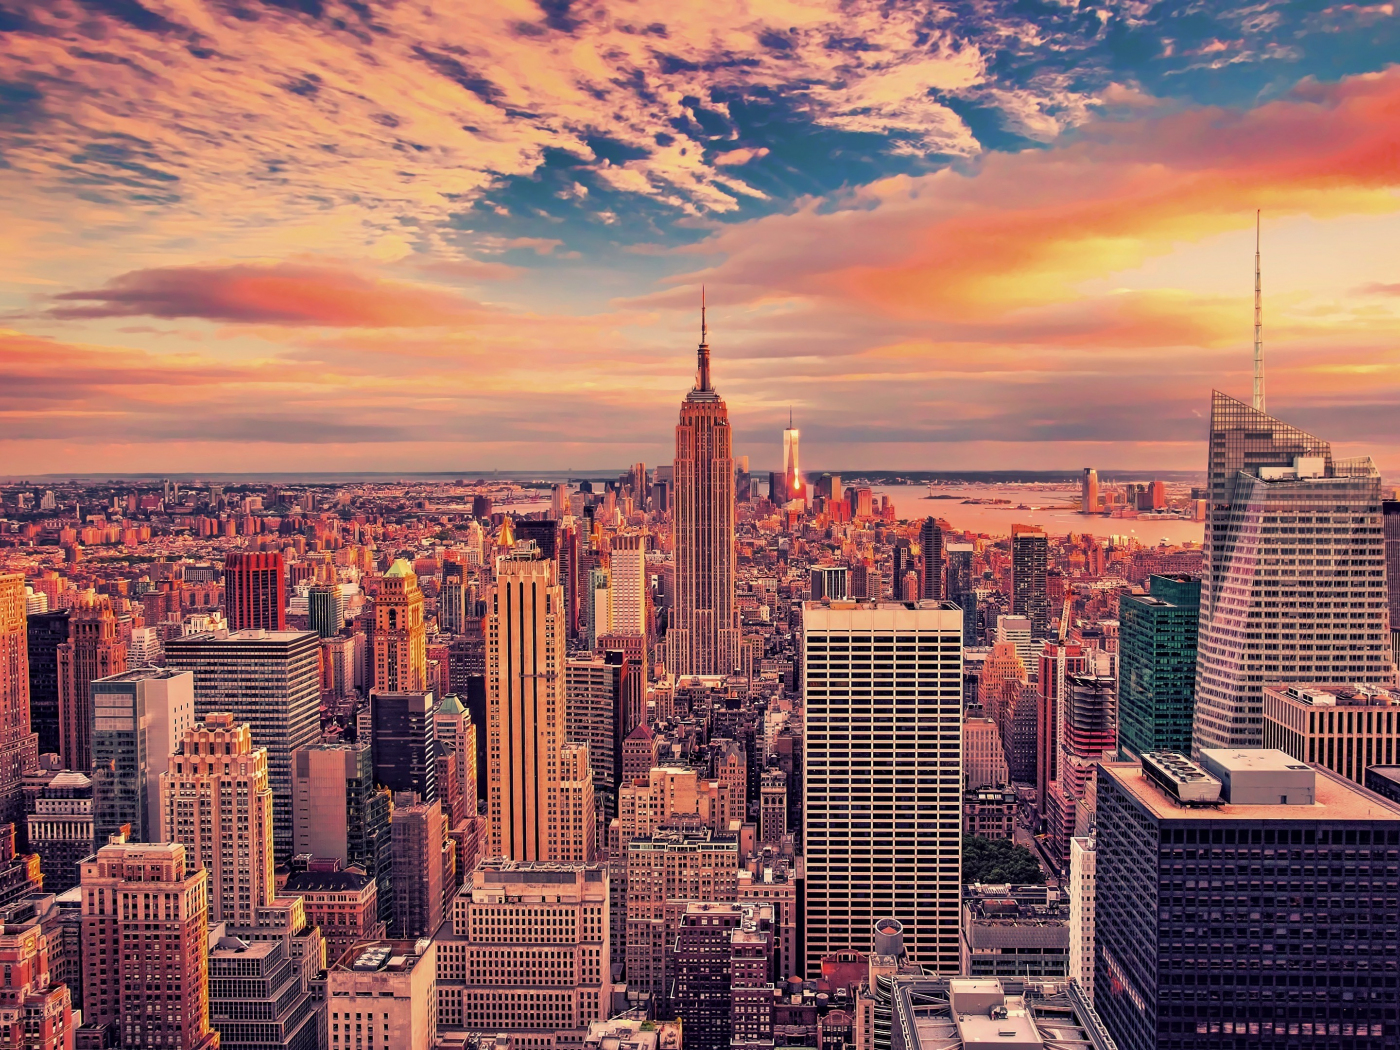 1400x1050 wallpaper Empire state building, buildings, skyscrapers, new york city, sunset, 4k